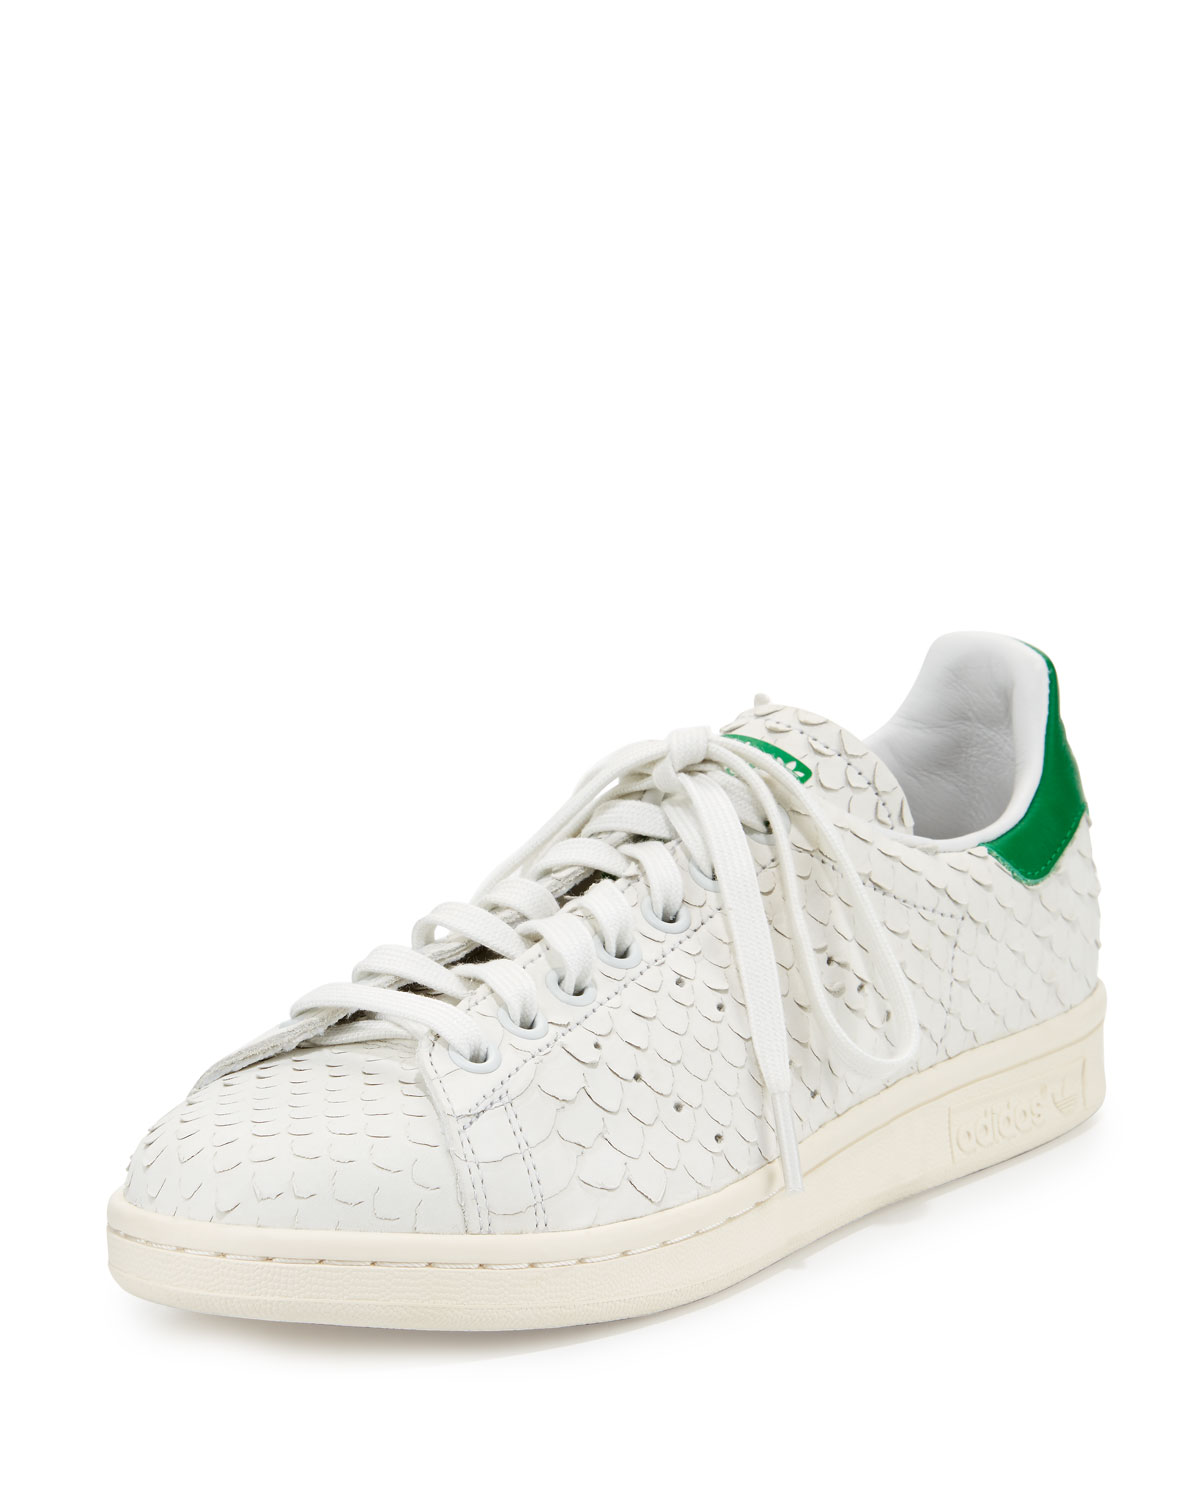 6426535c3d1ee1 Adidas Stan Smith Snake-Cut Leather Sneaker